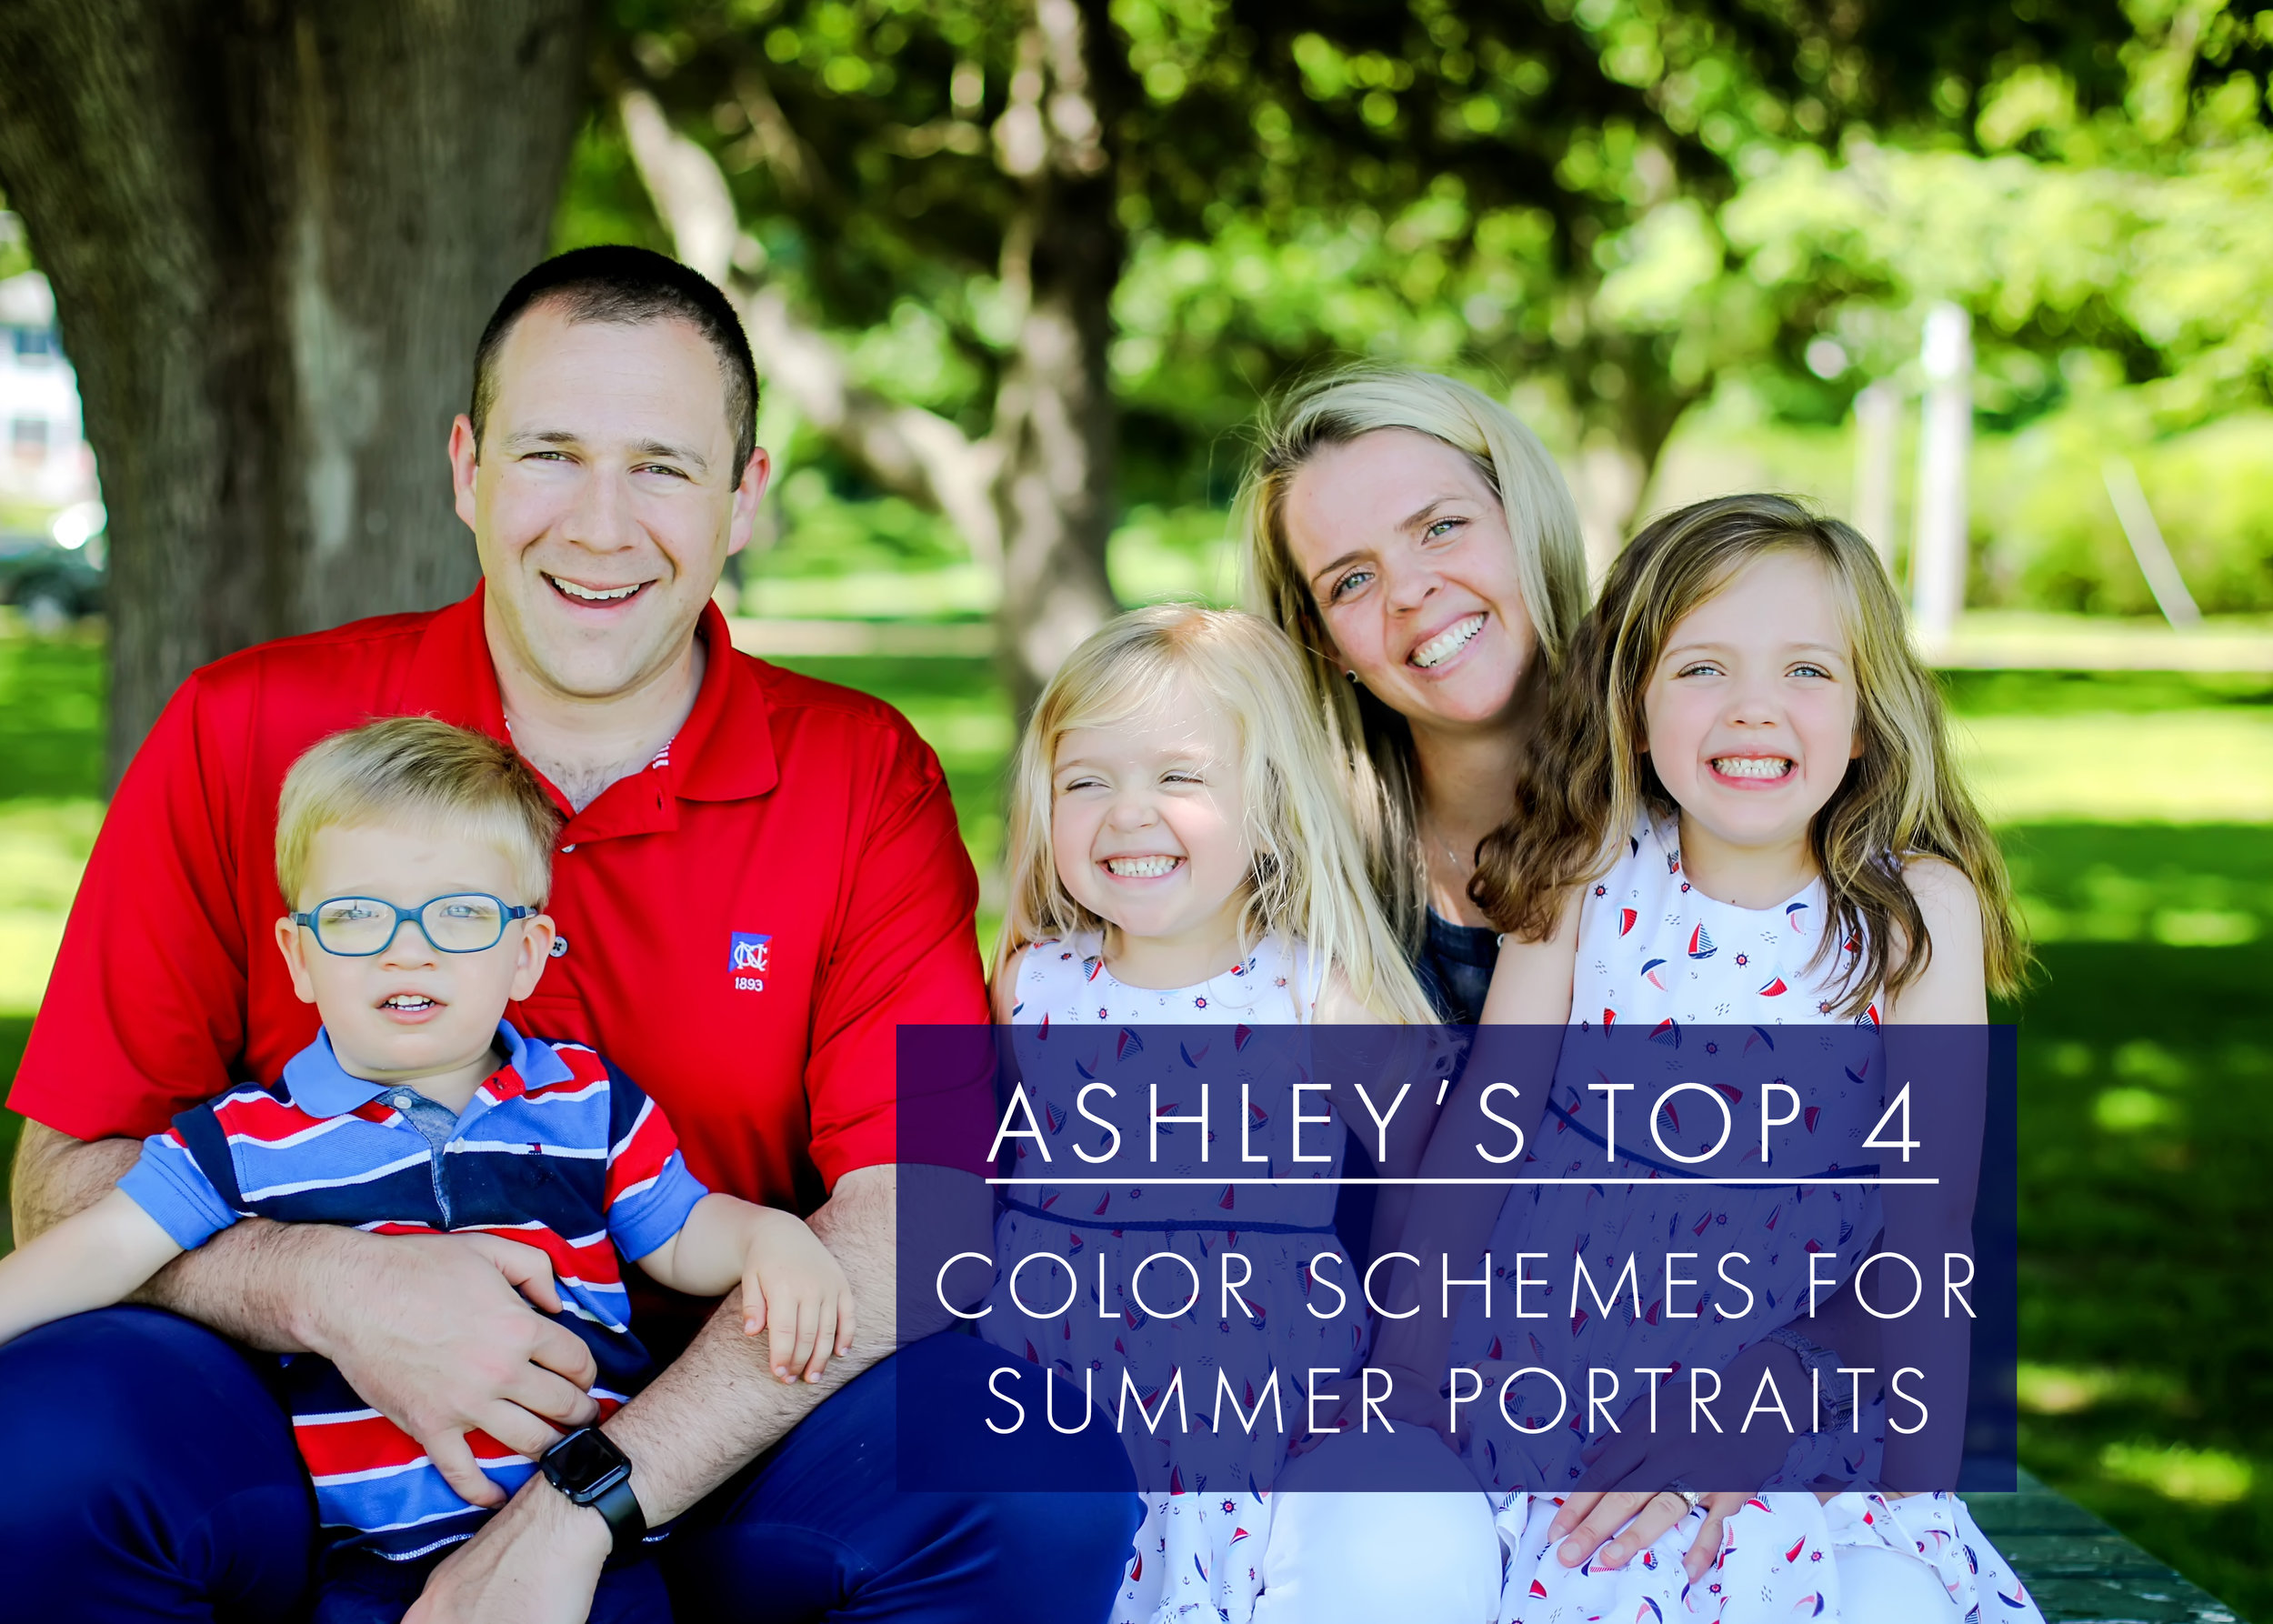 blue and red color scheme for portraits.jpg